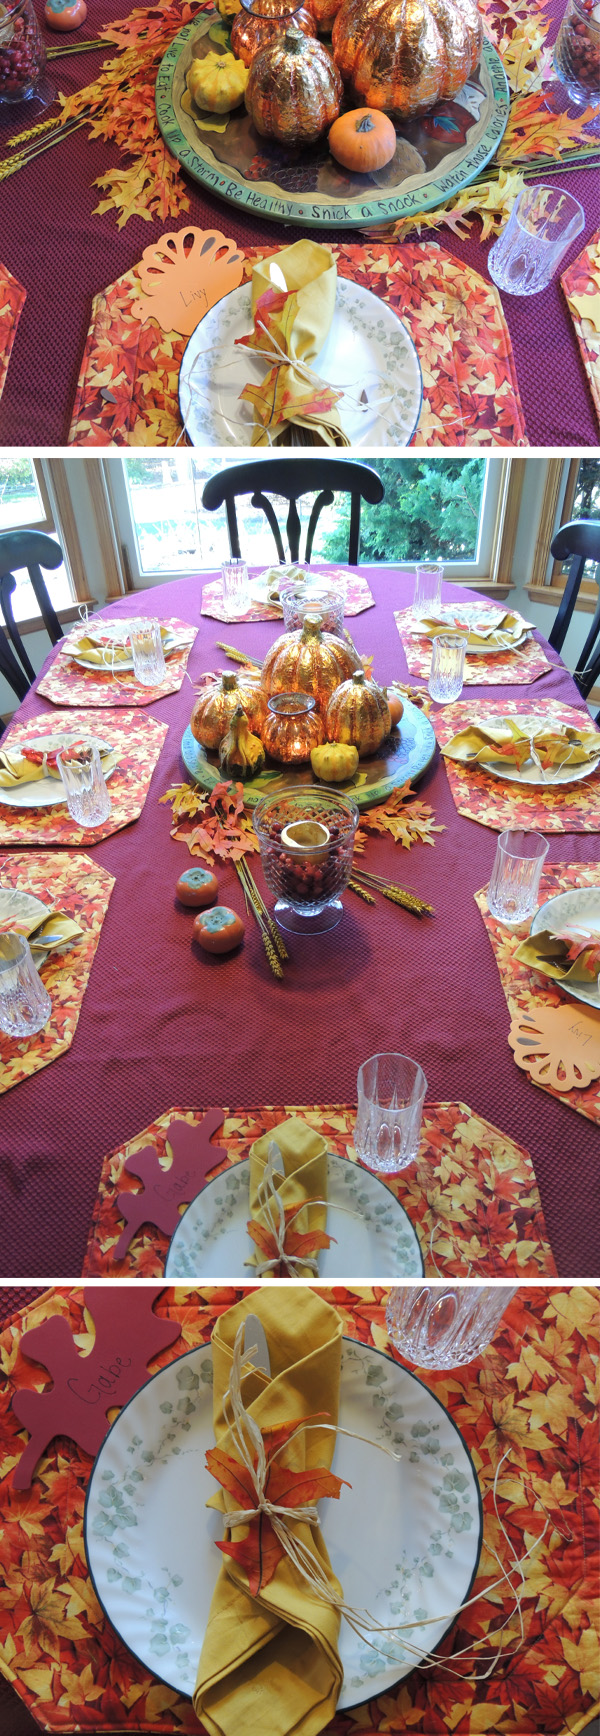 thanksgiving table 2012 purple orange leaves